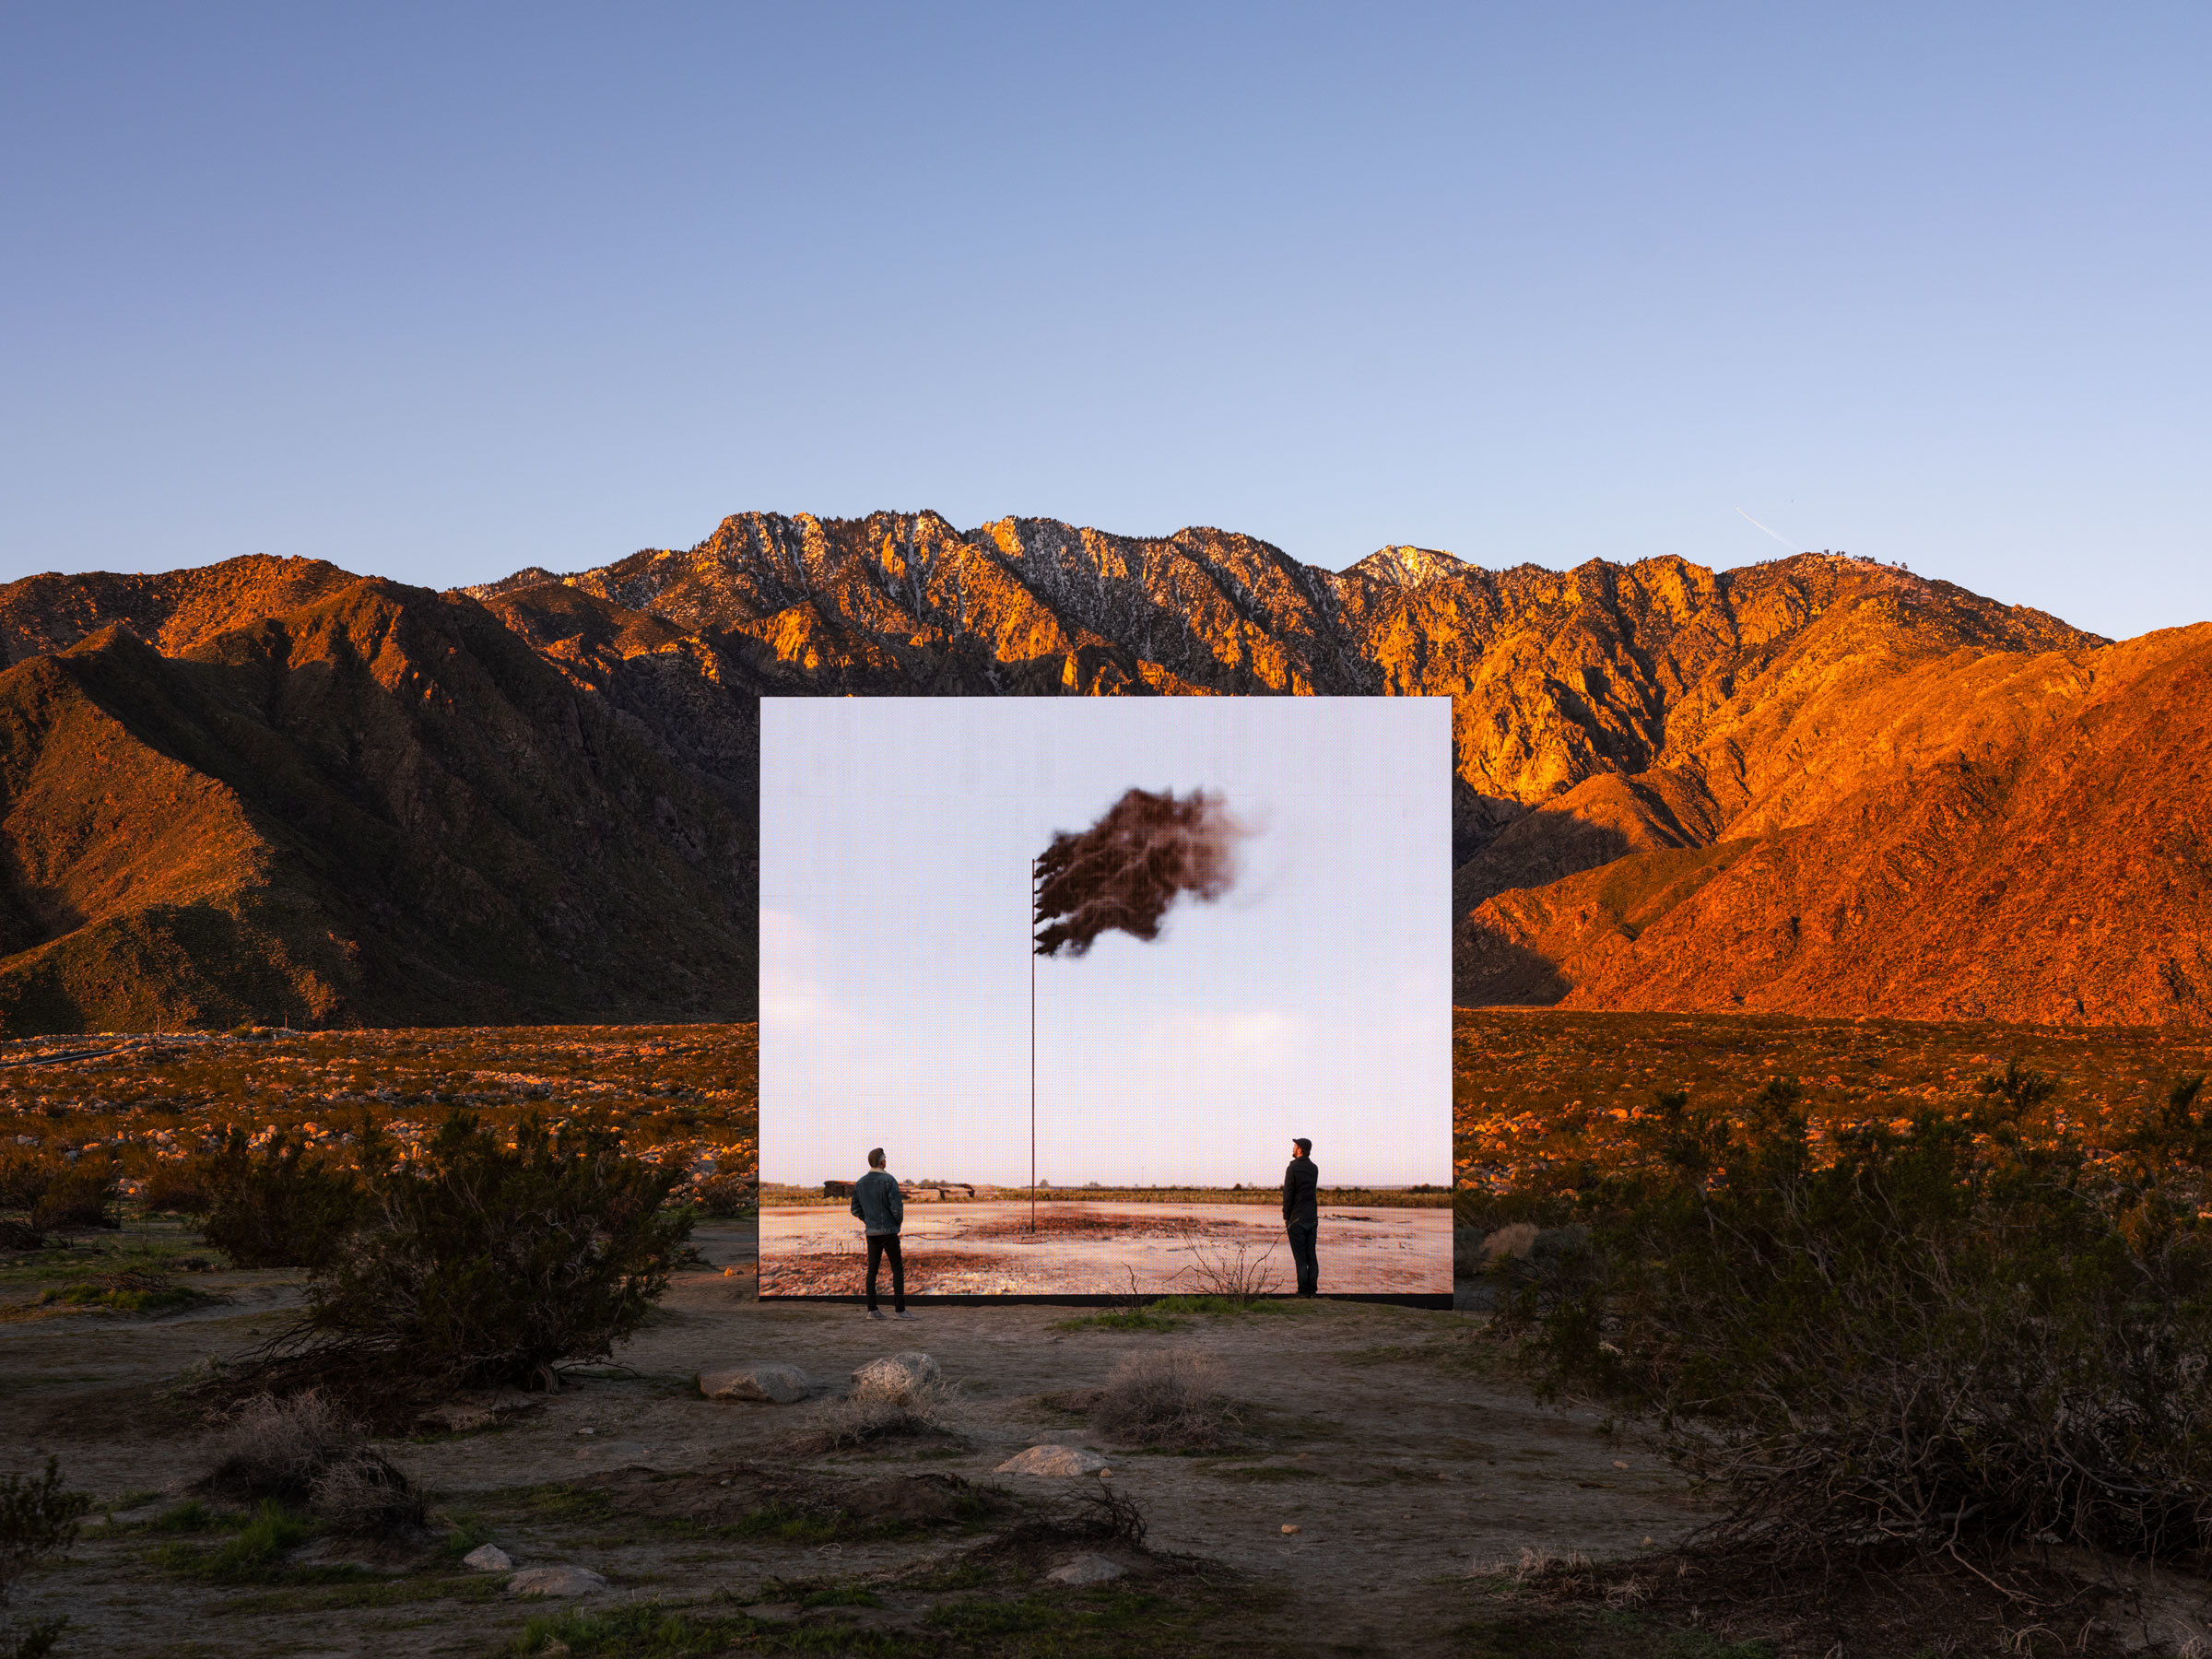 Two figures stand in front of a digital simulation depicting a flag made of smog within a mountainous desert landscape